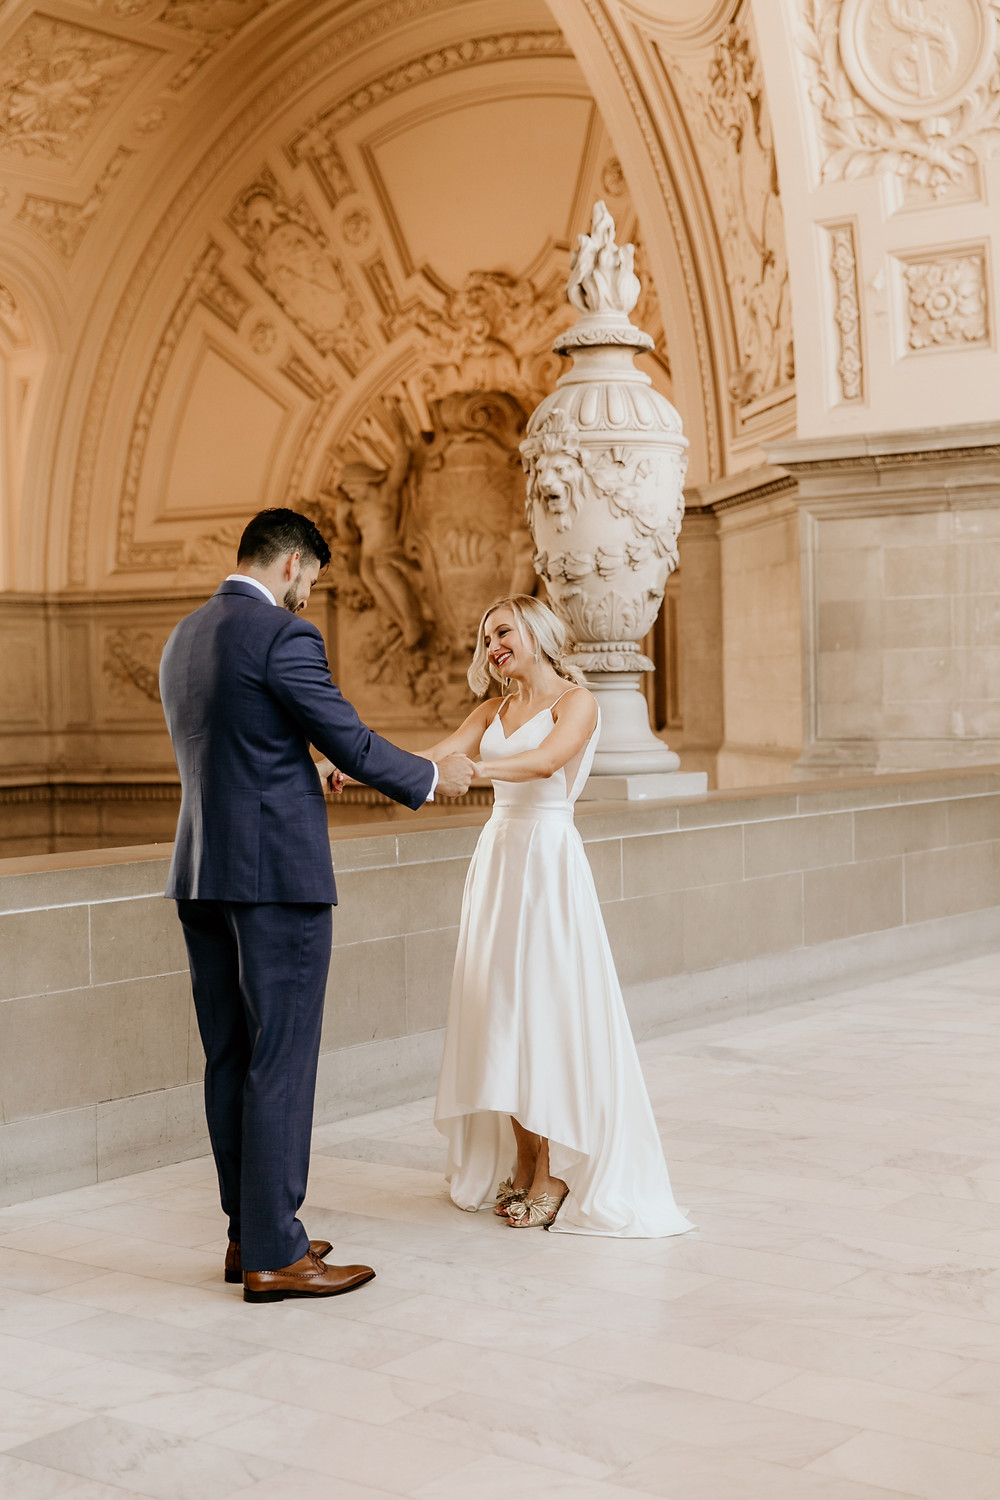 Destination San Francisco wedding planning at San Francisco City Hall in a chic, modern wedding dress